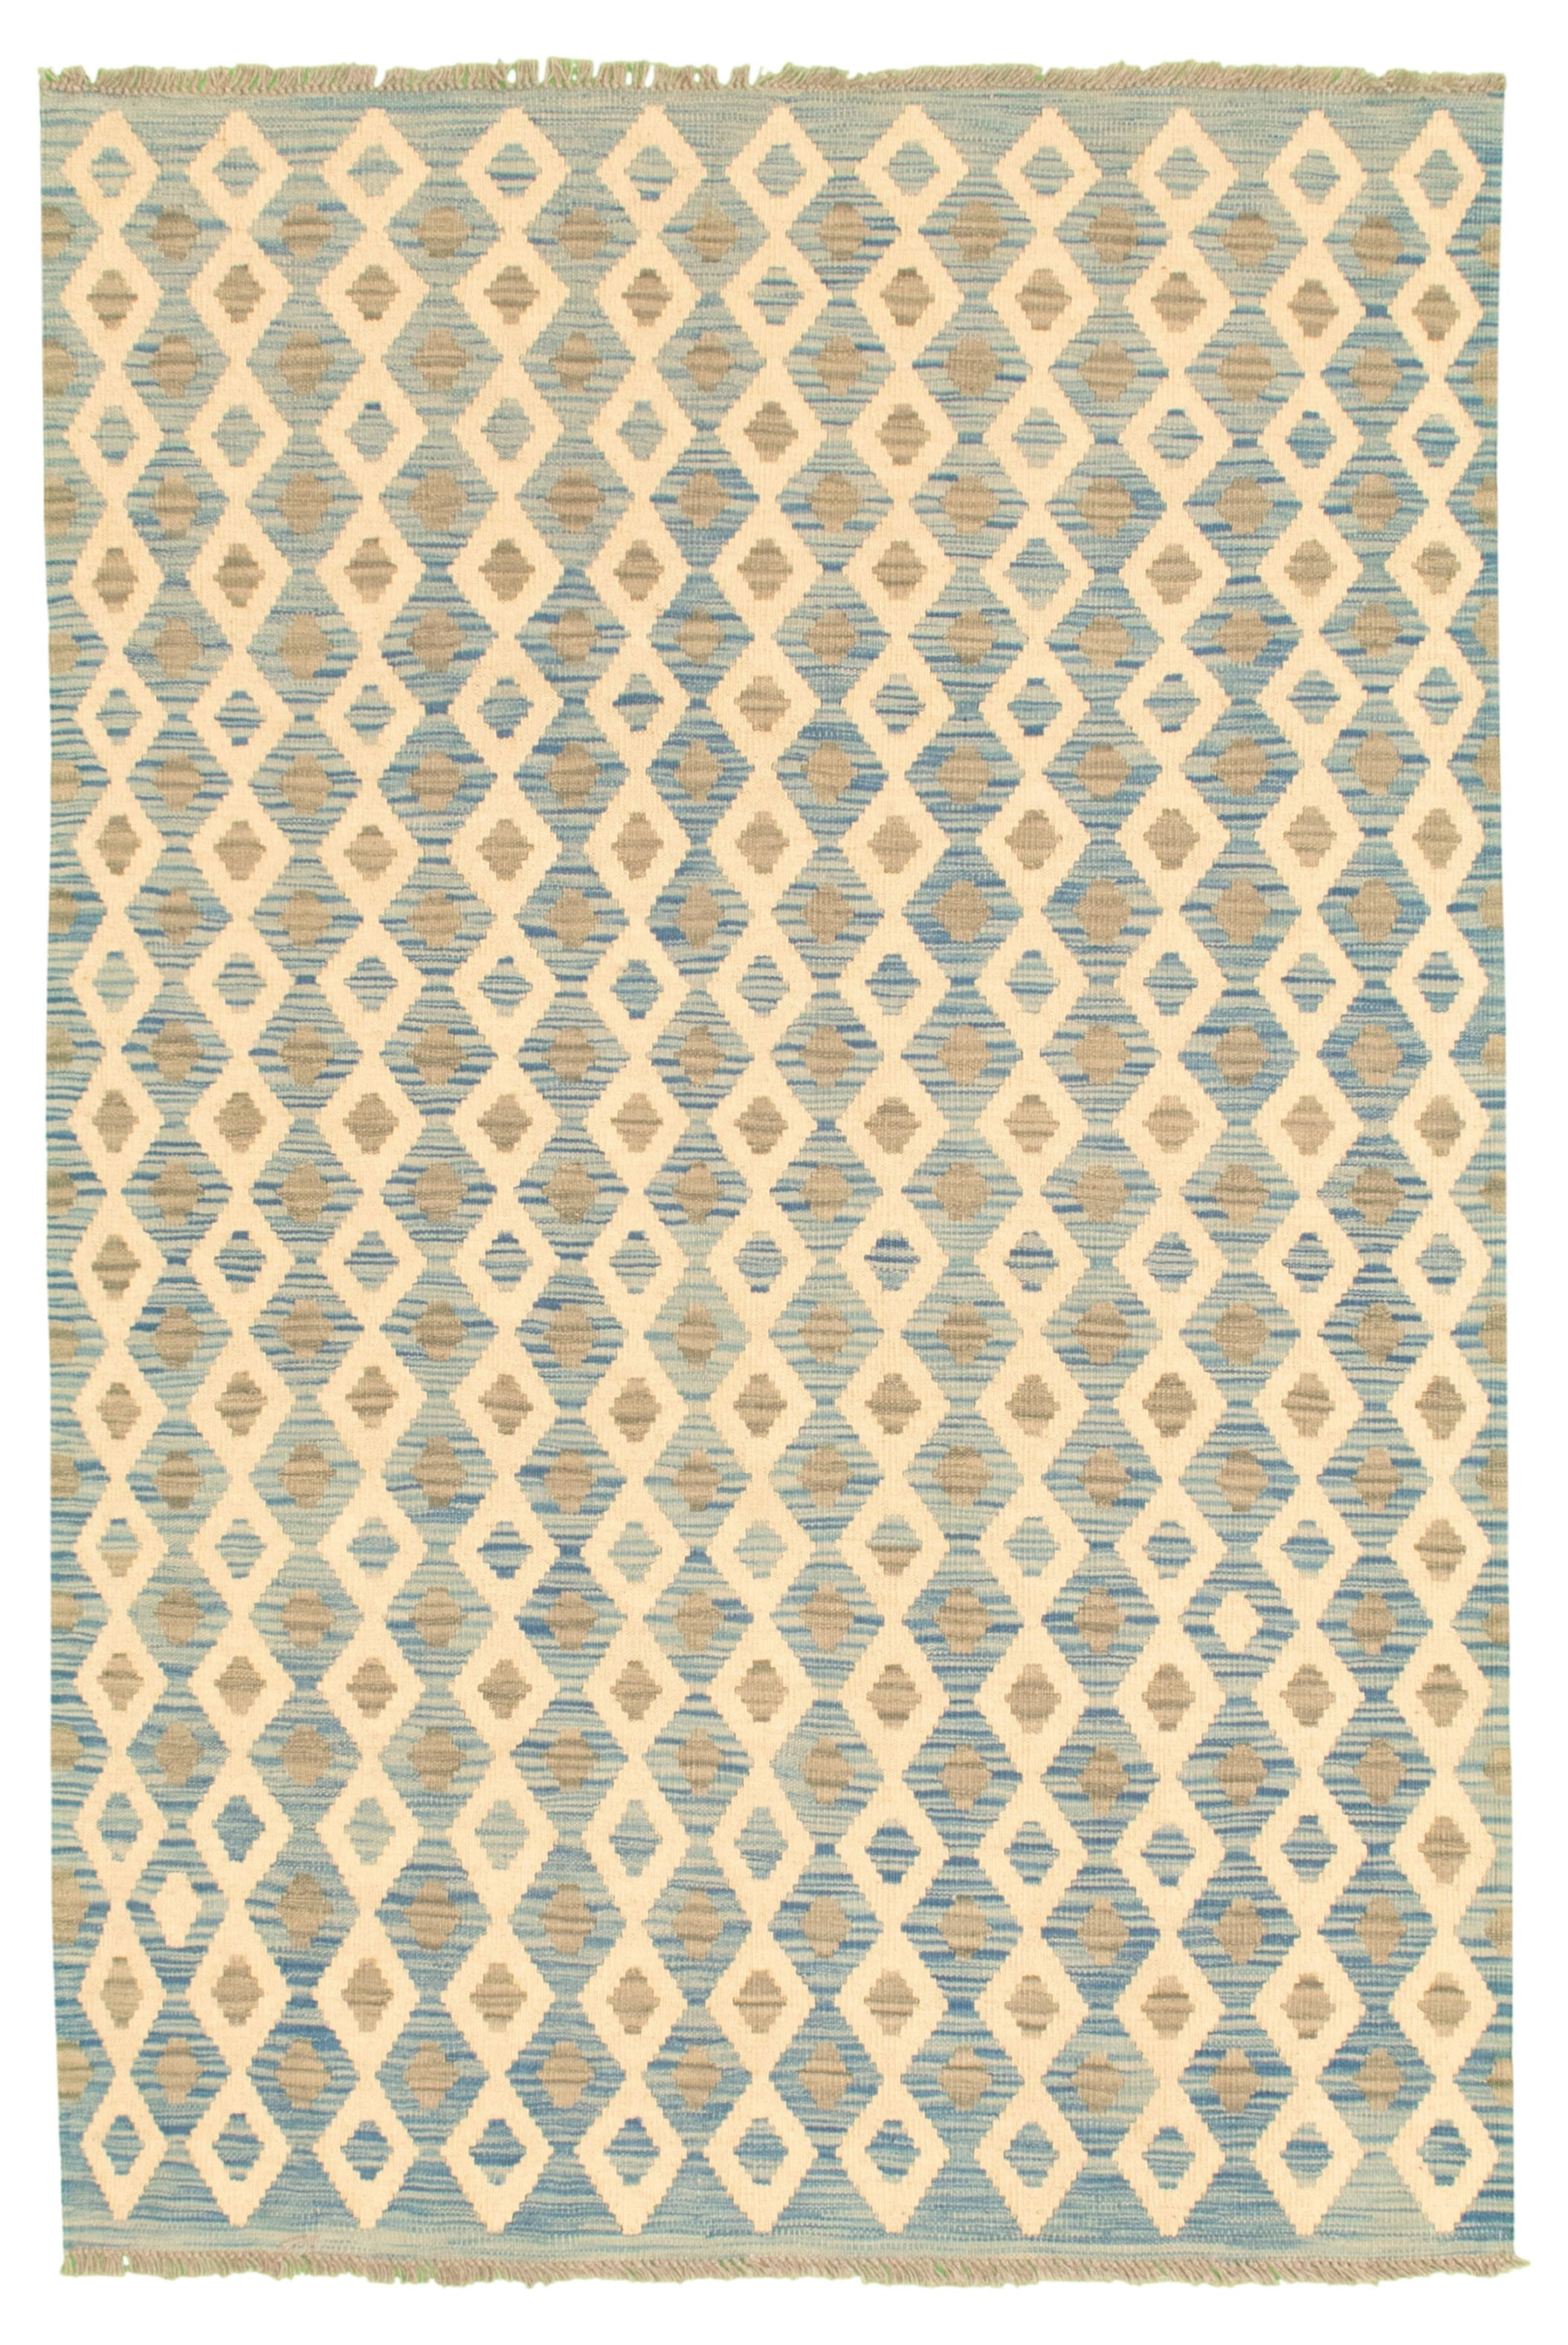 """Hand woven Bold and Colorful  Light Blue  Wool Kilim 4'4"""" x 6'3"""" Size: 4'4"""" x 6'3"""""""